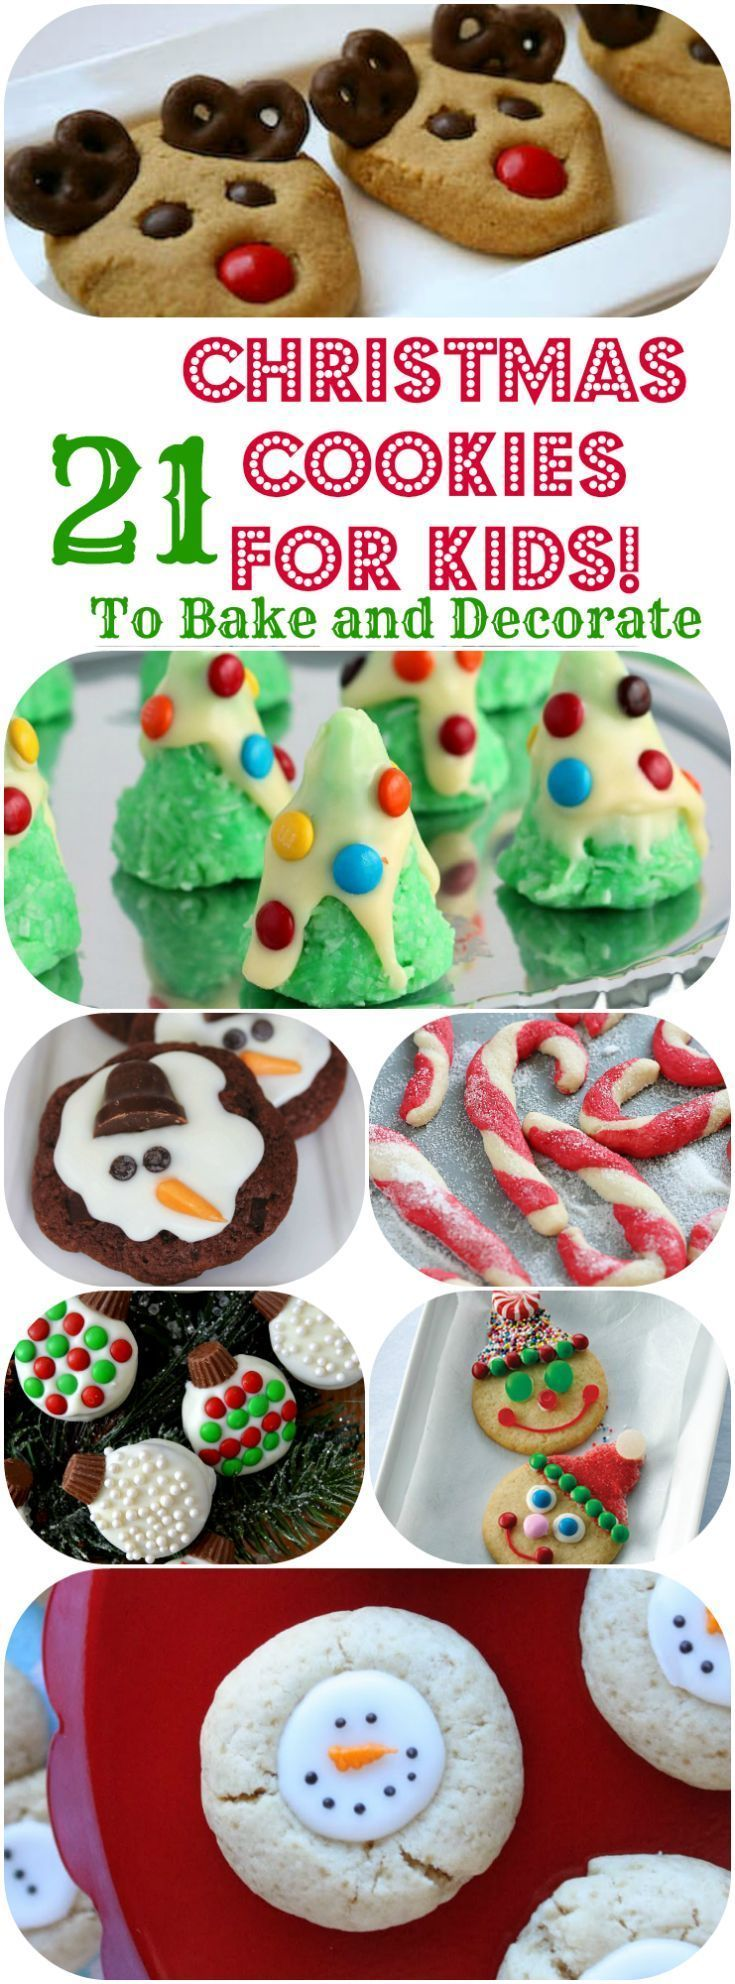 21 Christmas Cookies Kids Can Bake is part of Kids Crafts Christmas Ray Bans - Easy Christmas Cookie recipes for Kids to Bake or Decorate! Perfect for Christmas Gifts, Cookie Exchanges, and Cookies for Santa on Christmas Eve!